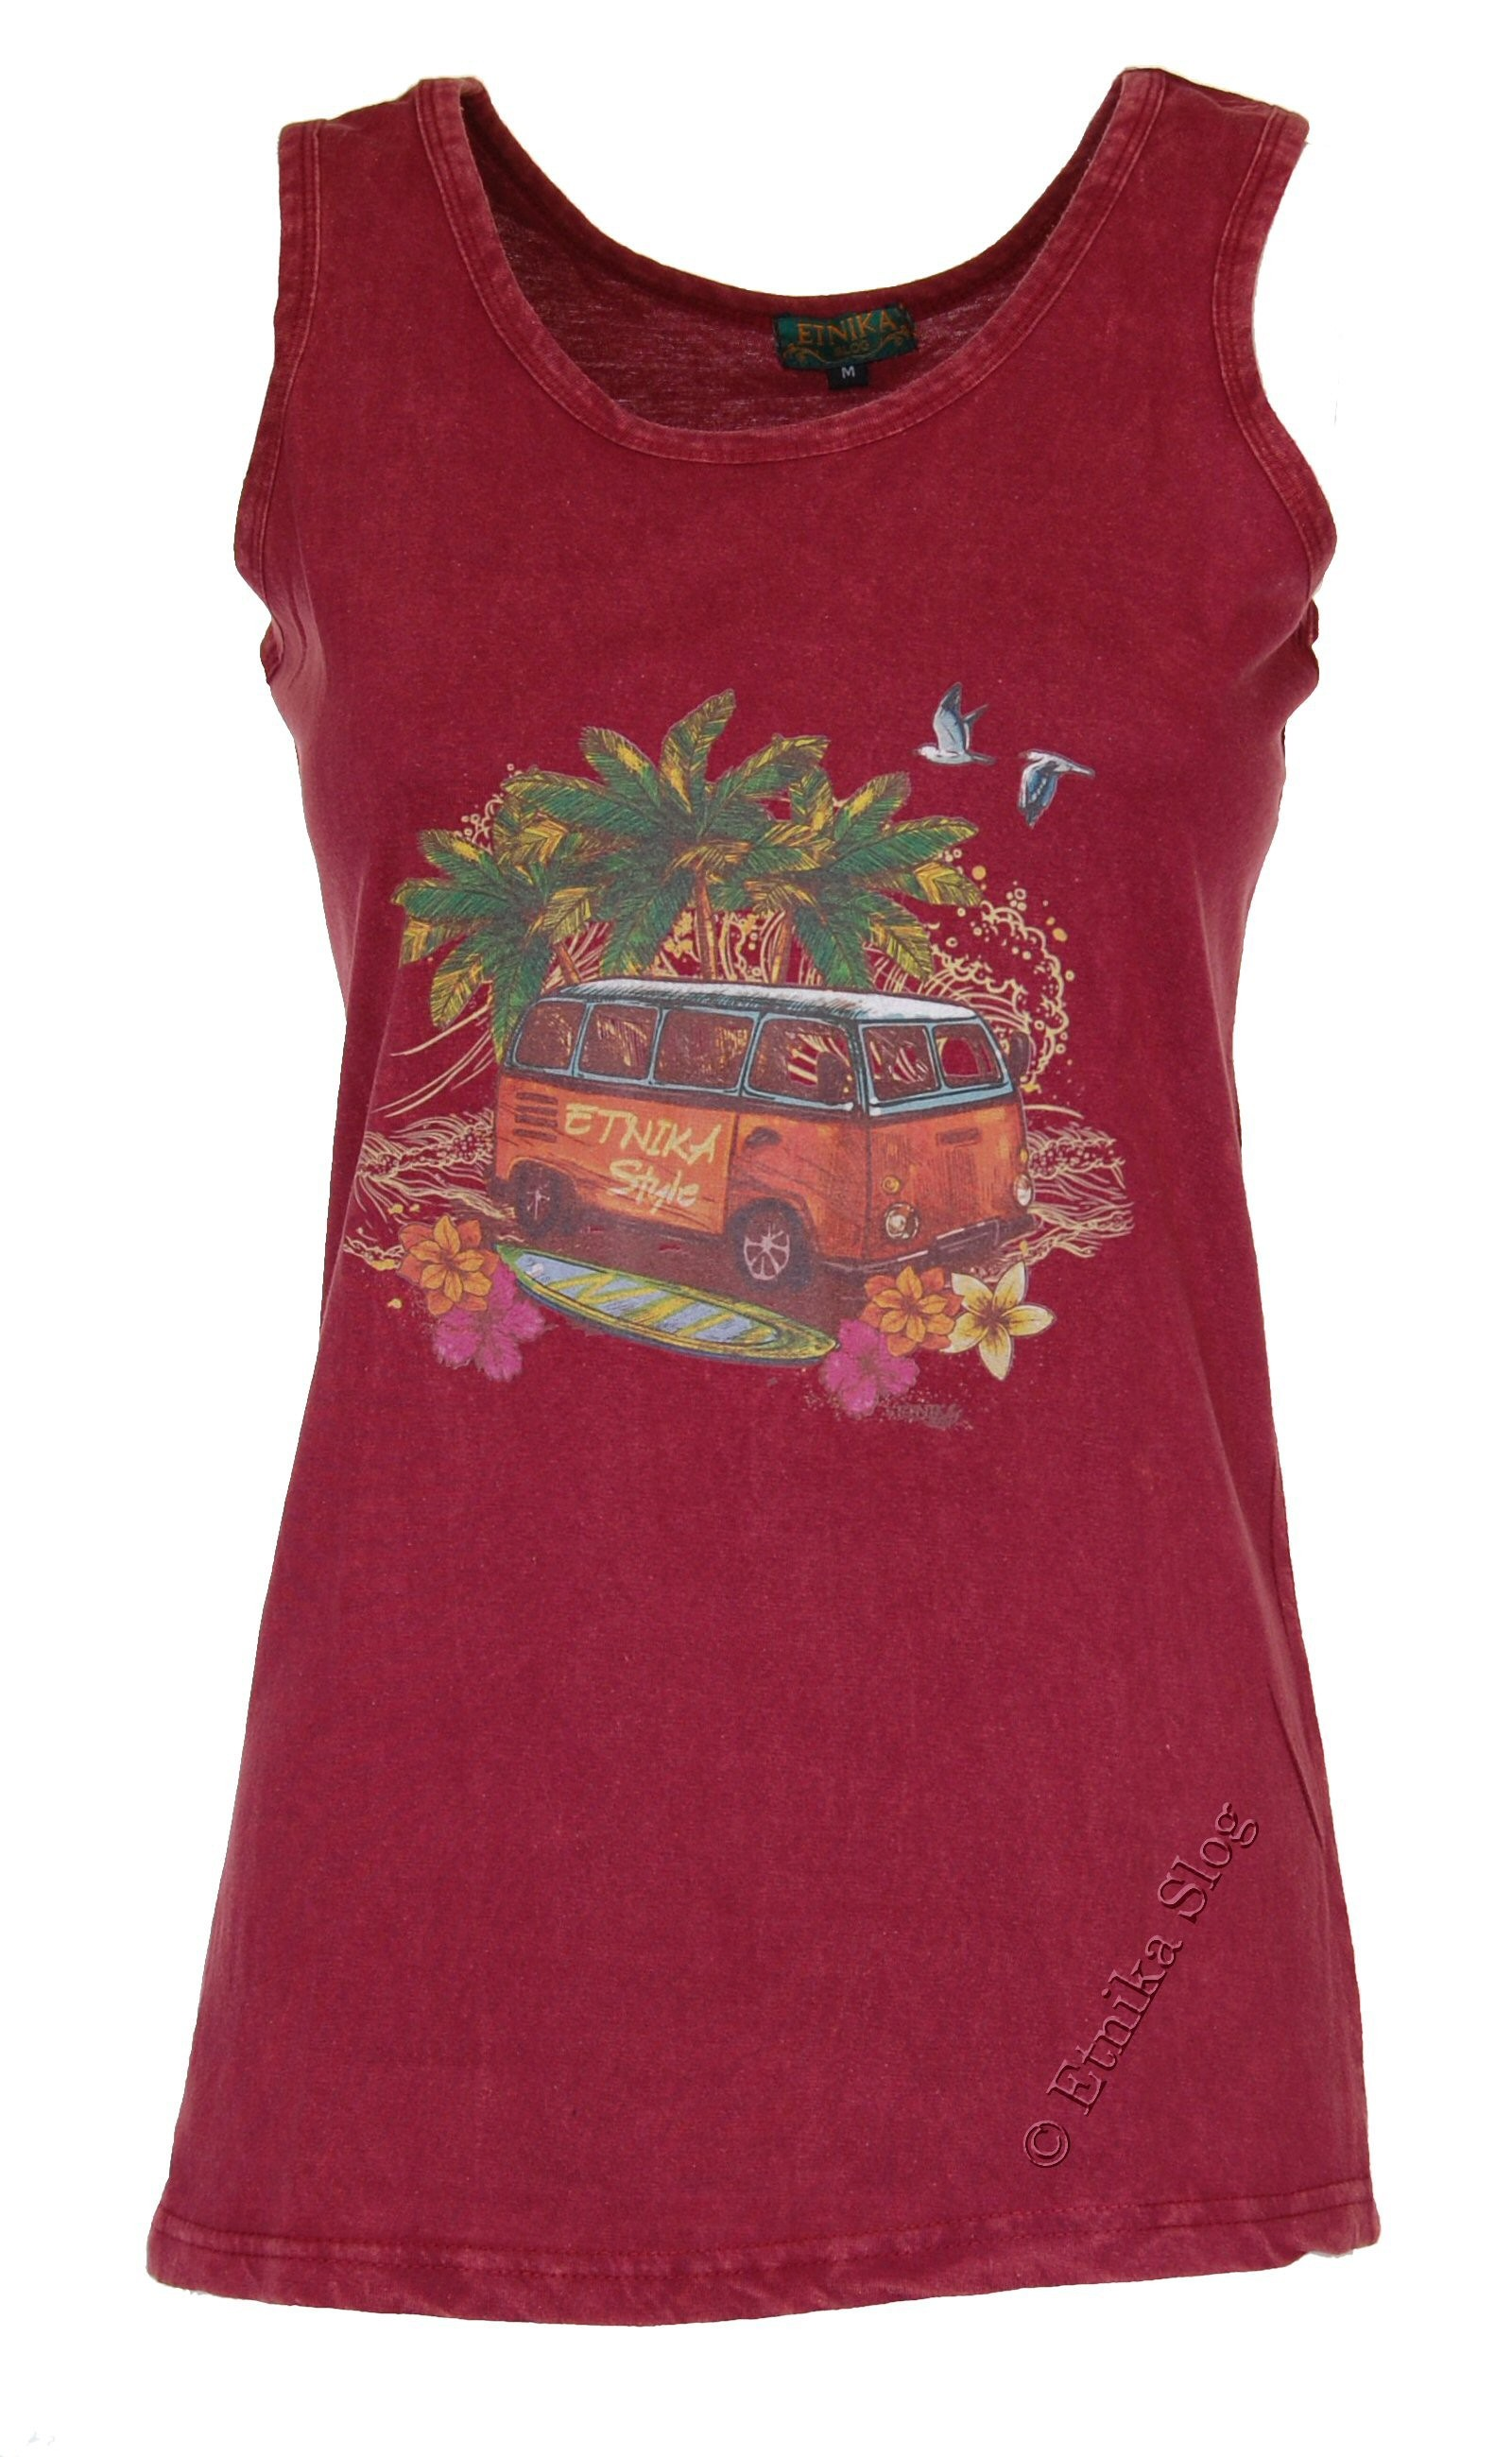 TOPS WITH PRINTS AB-NPM04-35 - Oriente Import S.r.l.